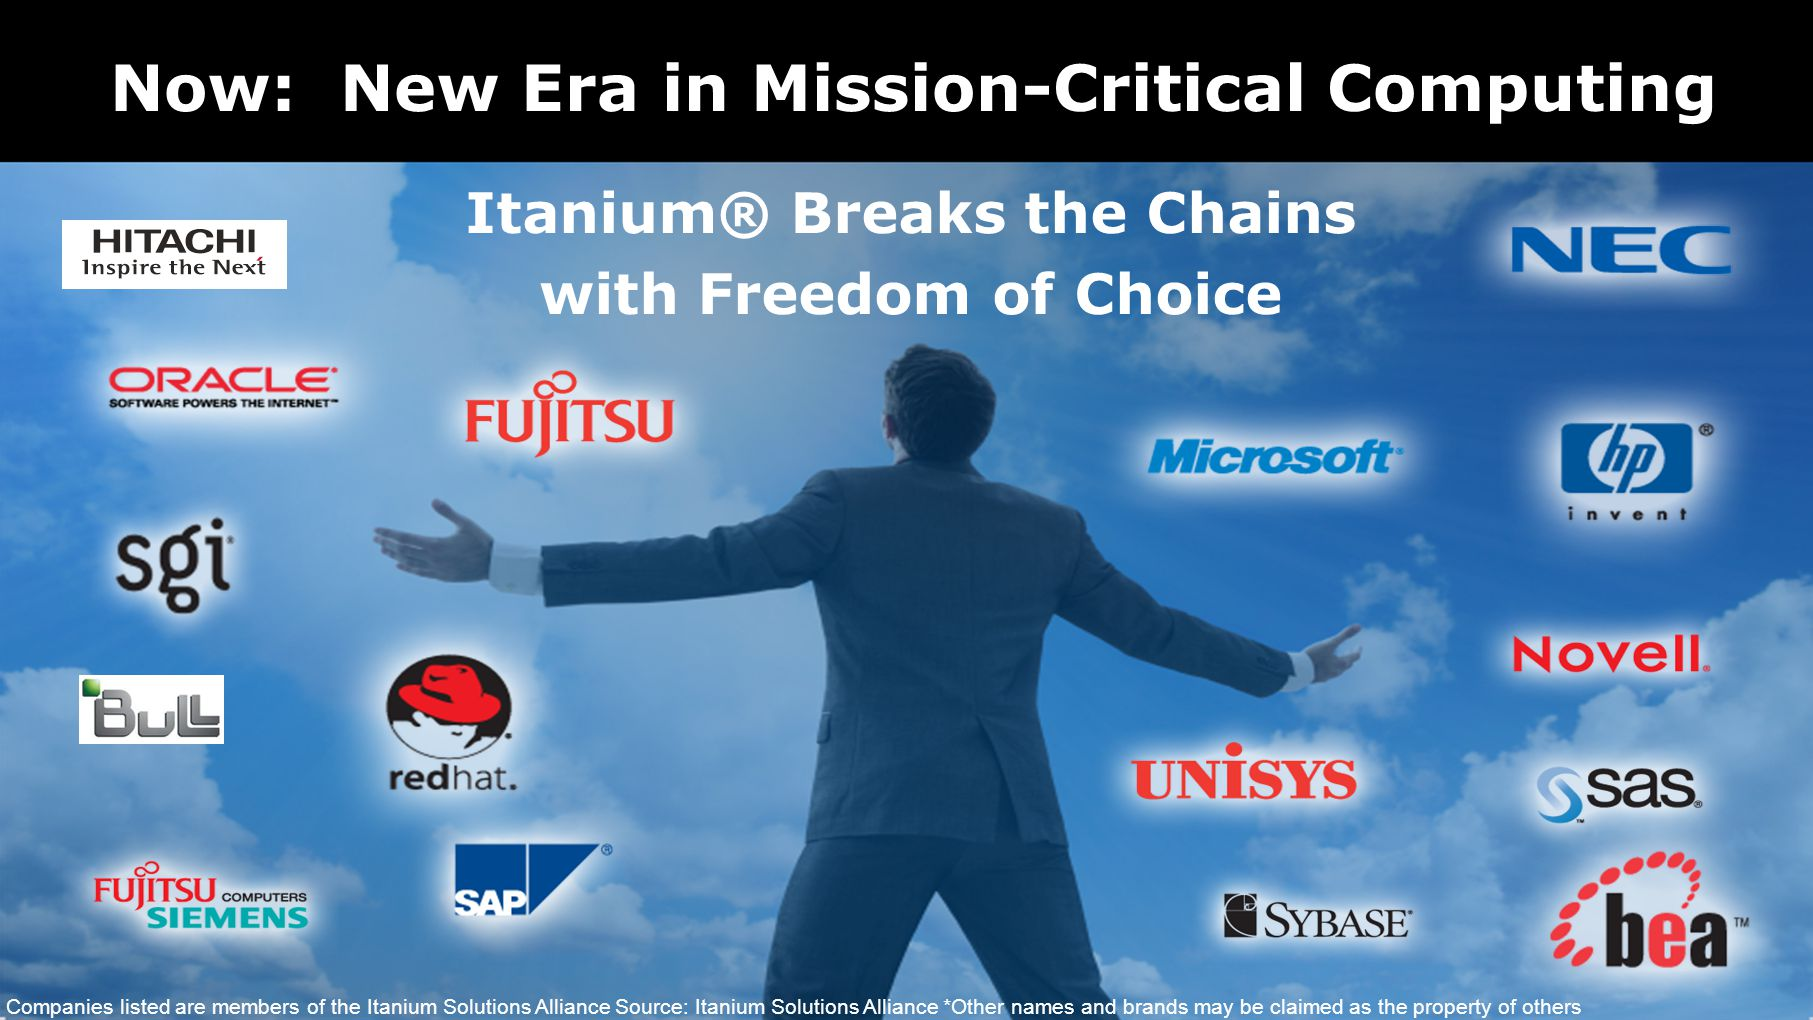 Now: New Era in Mission-Critical Computing Itanium® Breaks the Chains with Freedom of Choice Companies listed are members of the Itanium Solutions Alliance Source: Itanium Solutions Alliance *Other names and brands may be claimed as the property of others